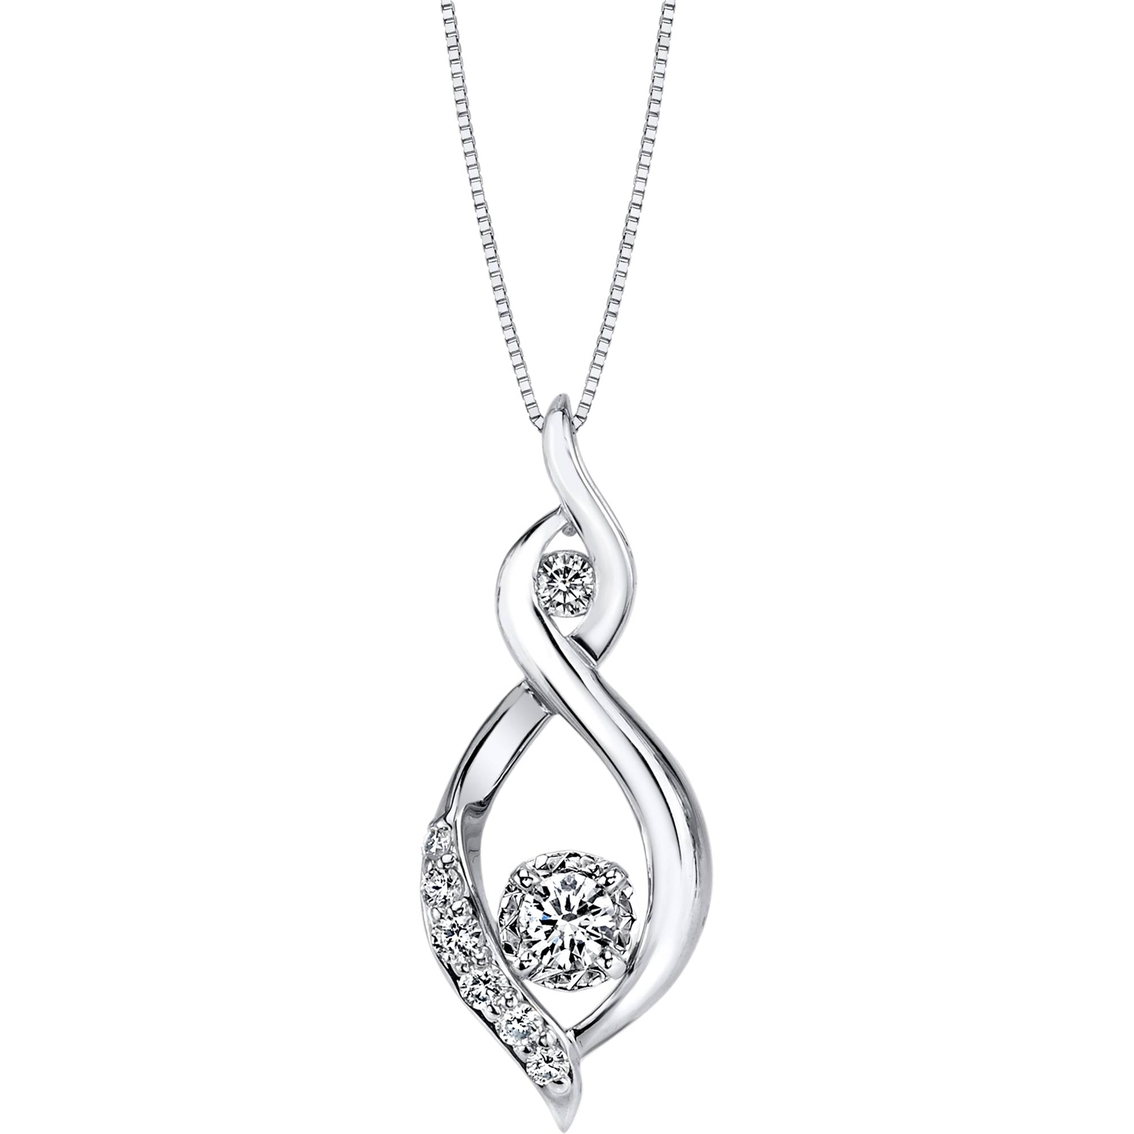 Sirena Collection 10k White Gold 1 4 Ctw Fashion Pendant